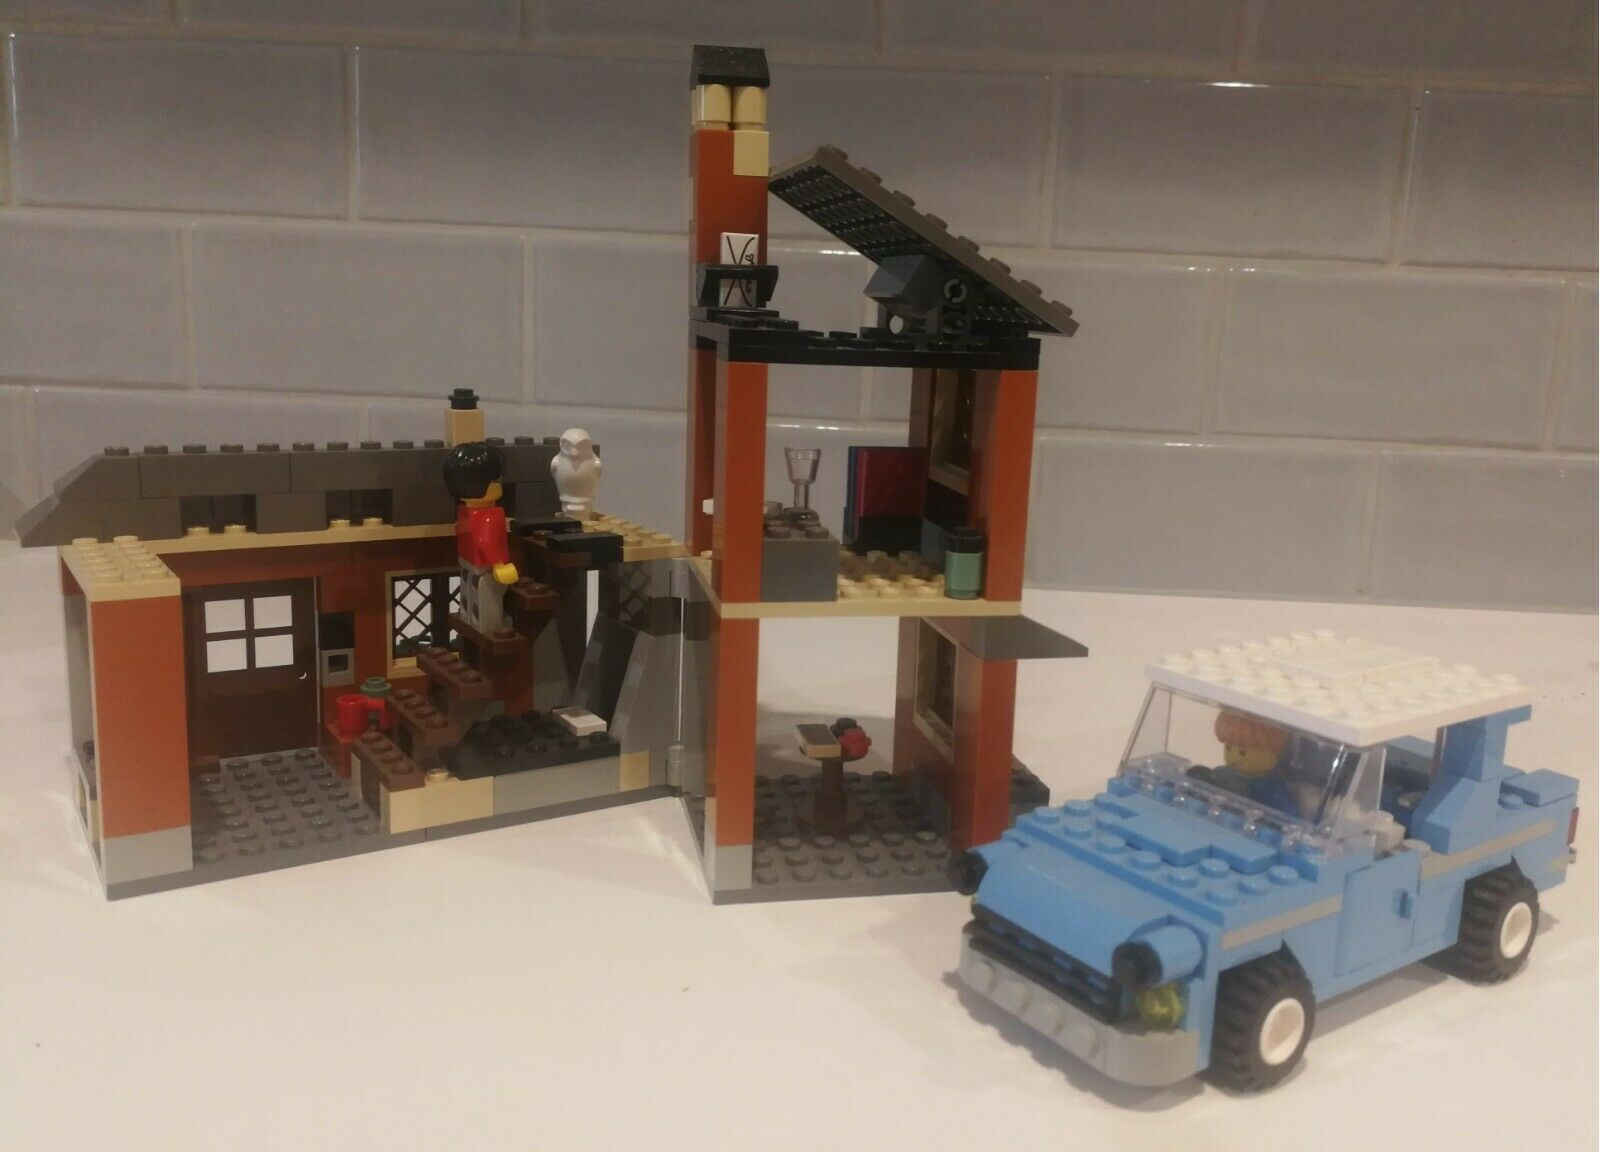 Harry Potter Lego Escape from Privet Drive 4728-1